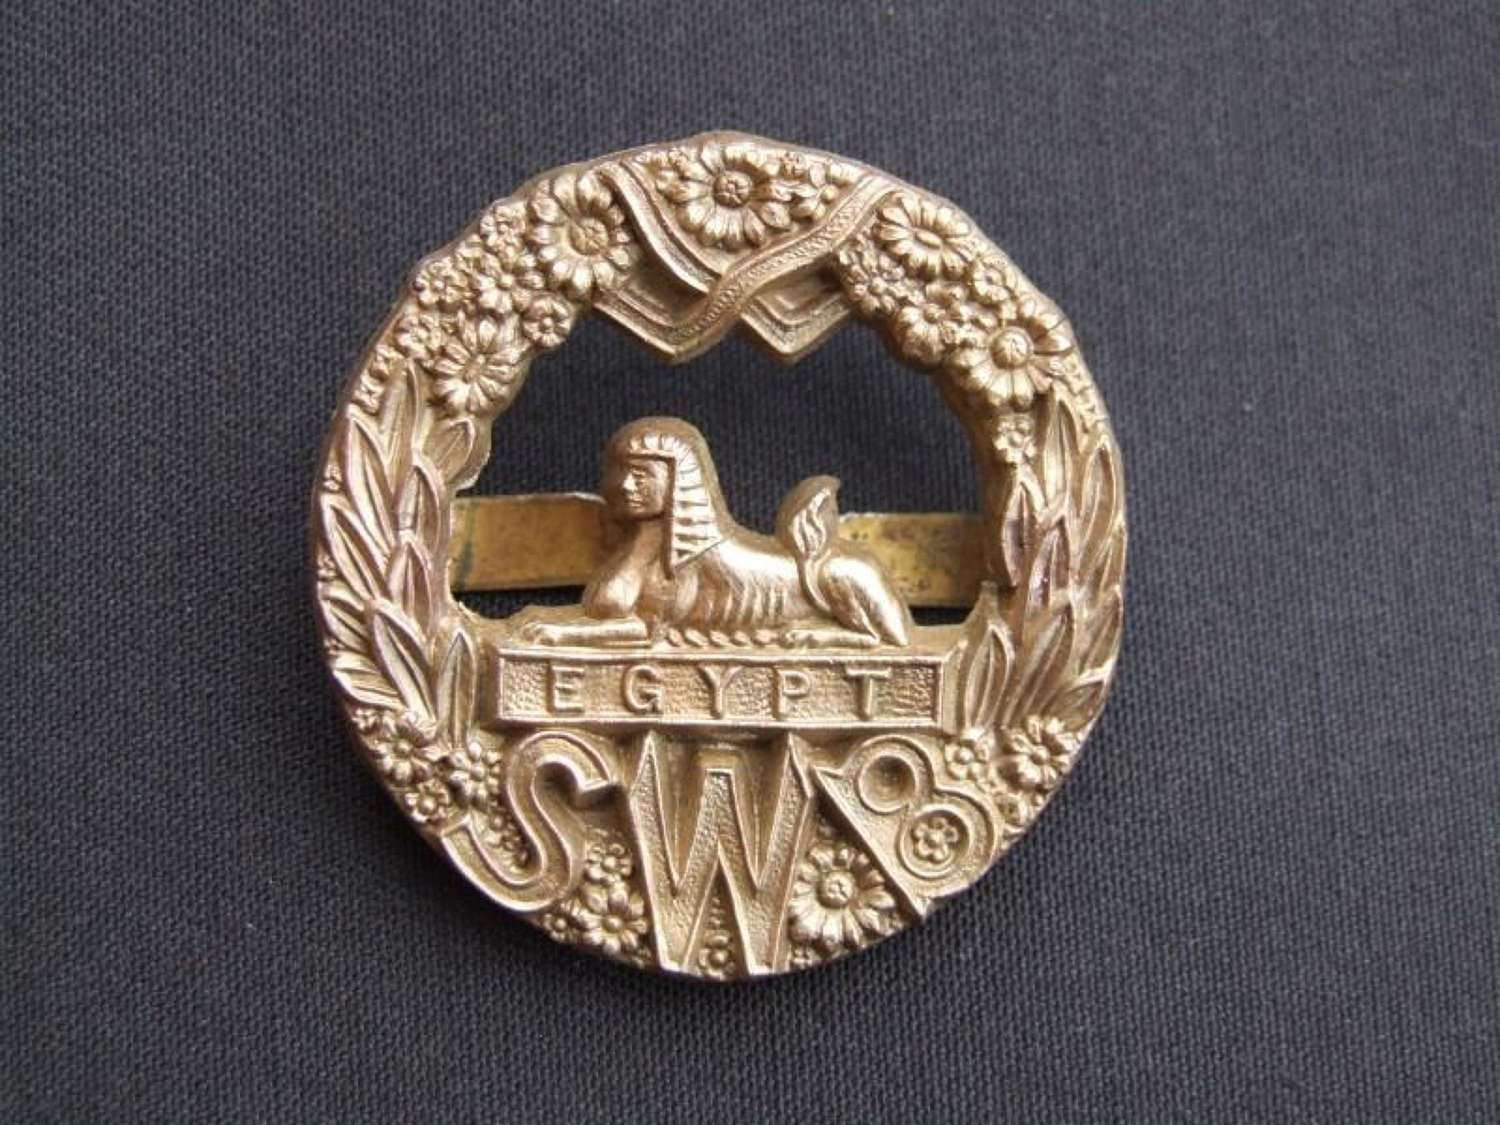 Wartime Plastic Economy Badge - South Wales Borders